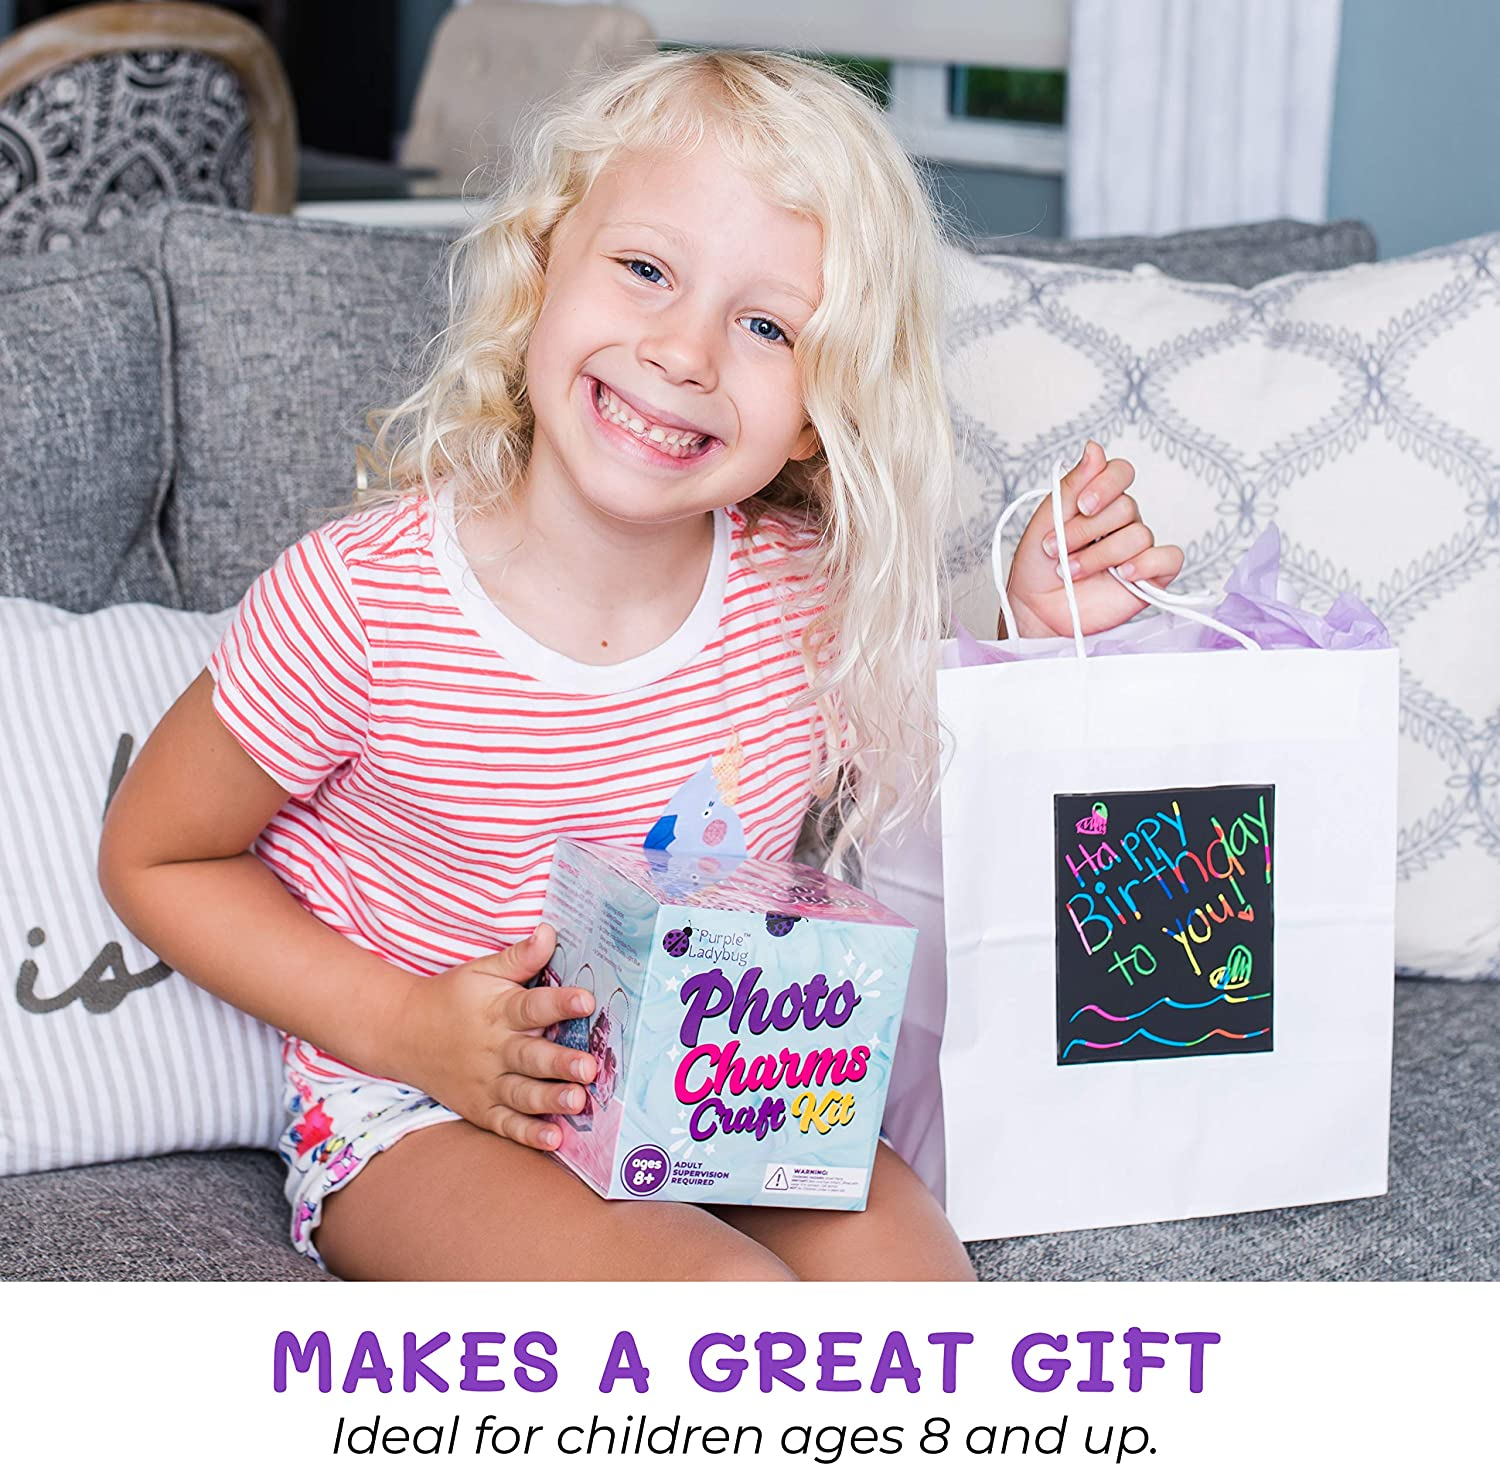 resin mold craft kit for giving as a holiday or birthday gift to kids aged eight and up